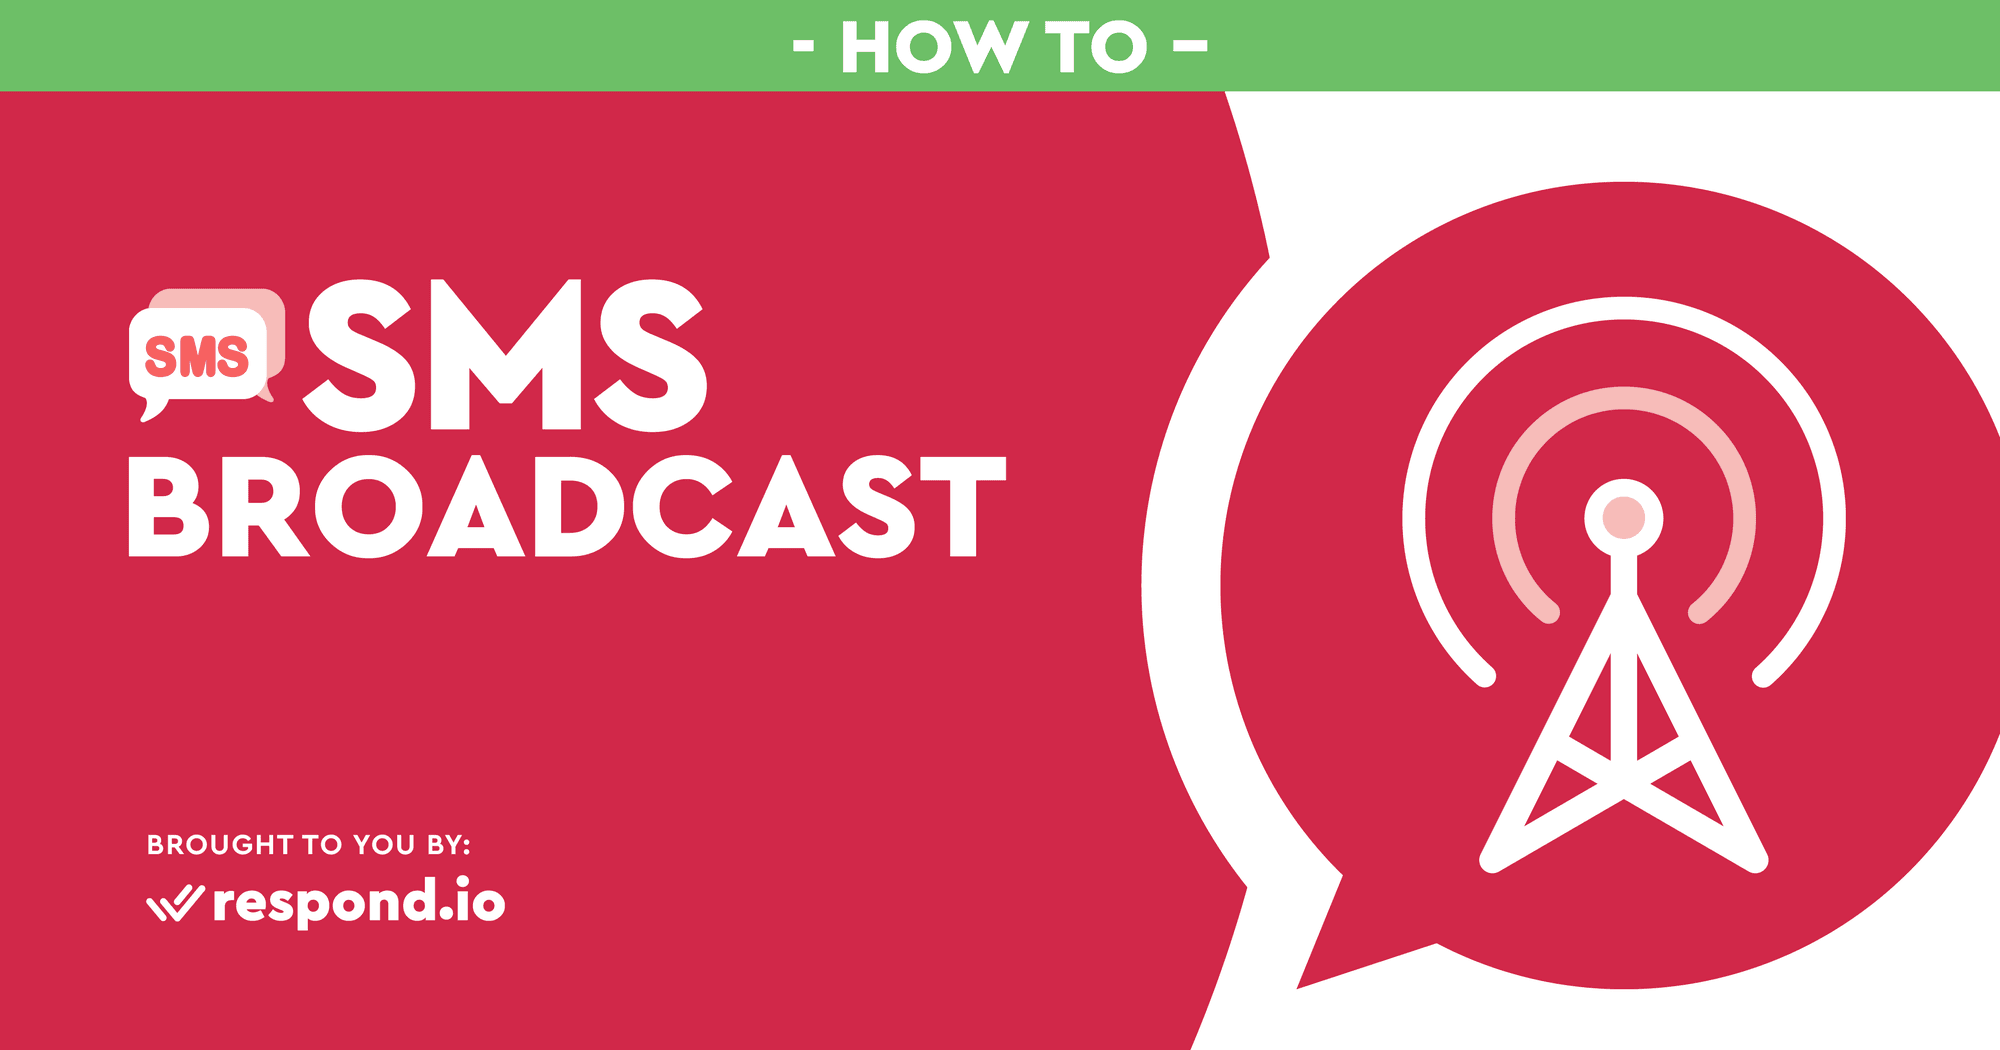 SMS Broadcast: A How-To Guide (Feb 2021)